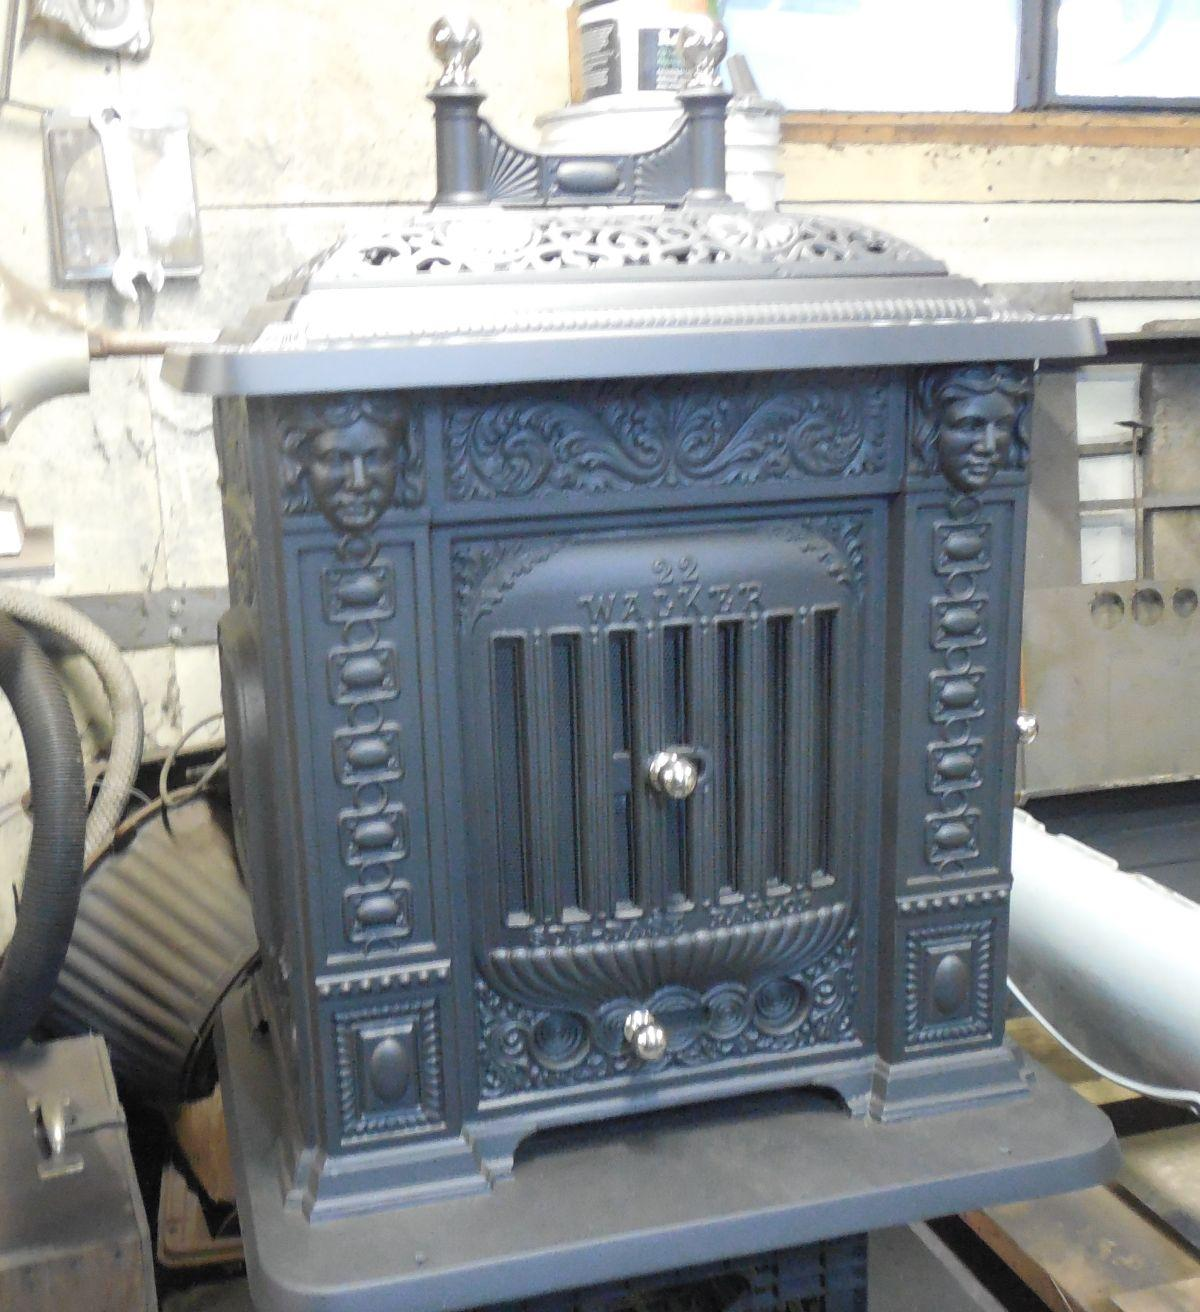 Old Wood Cook Stoves Are Still A Draw, For Some | Vermont Public Radio